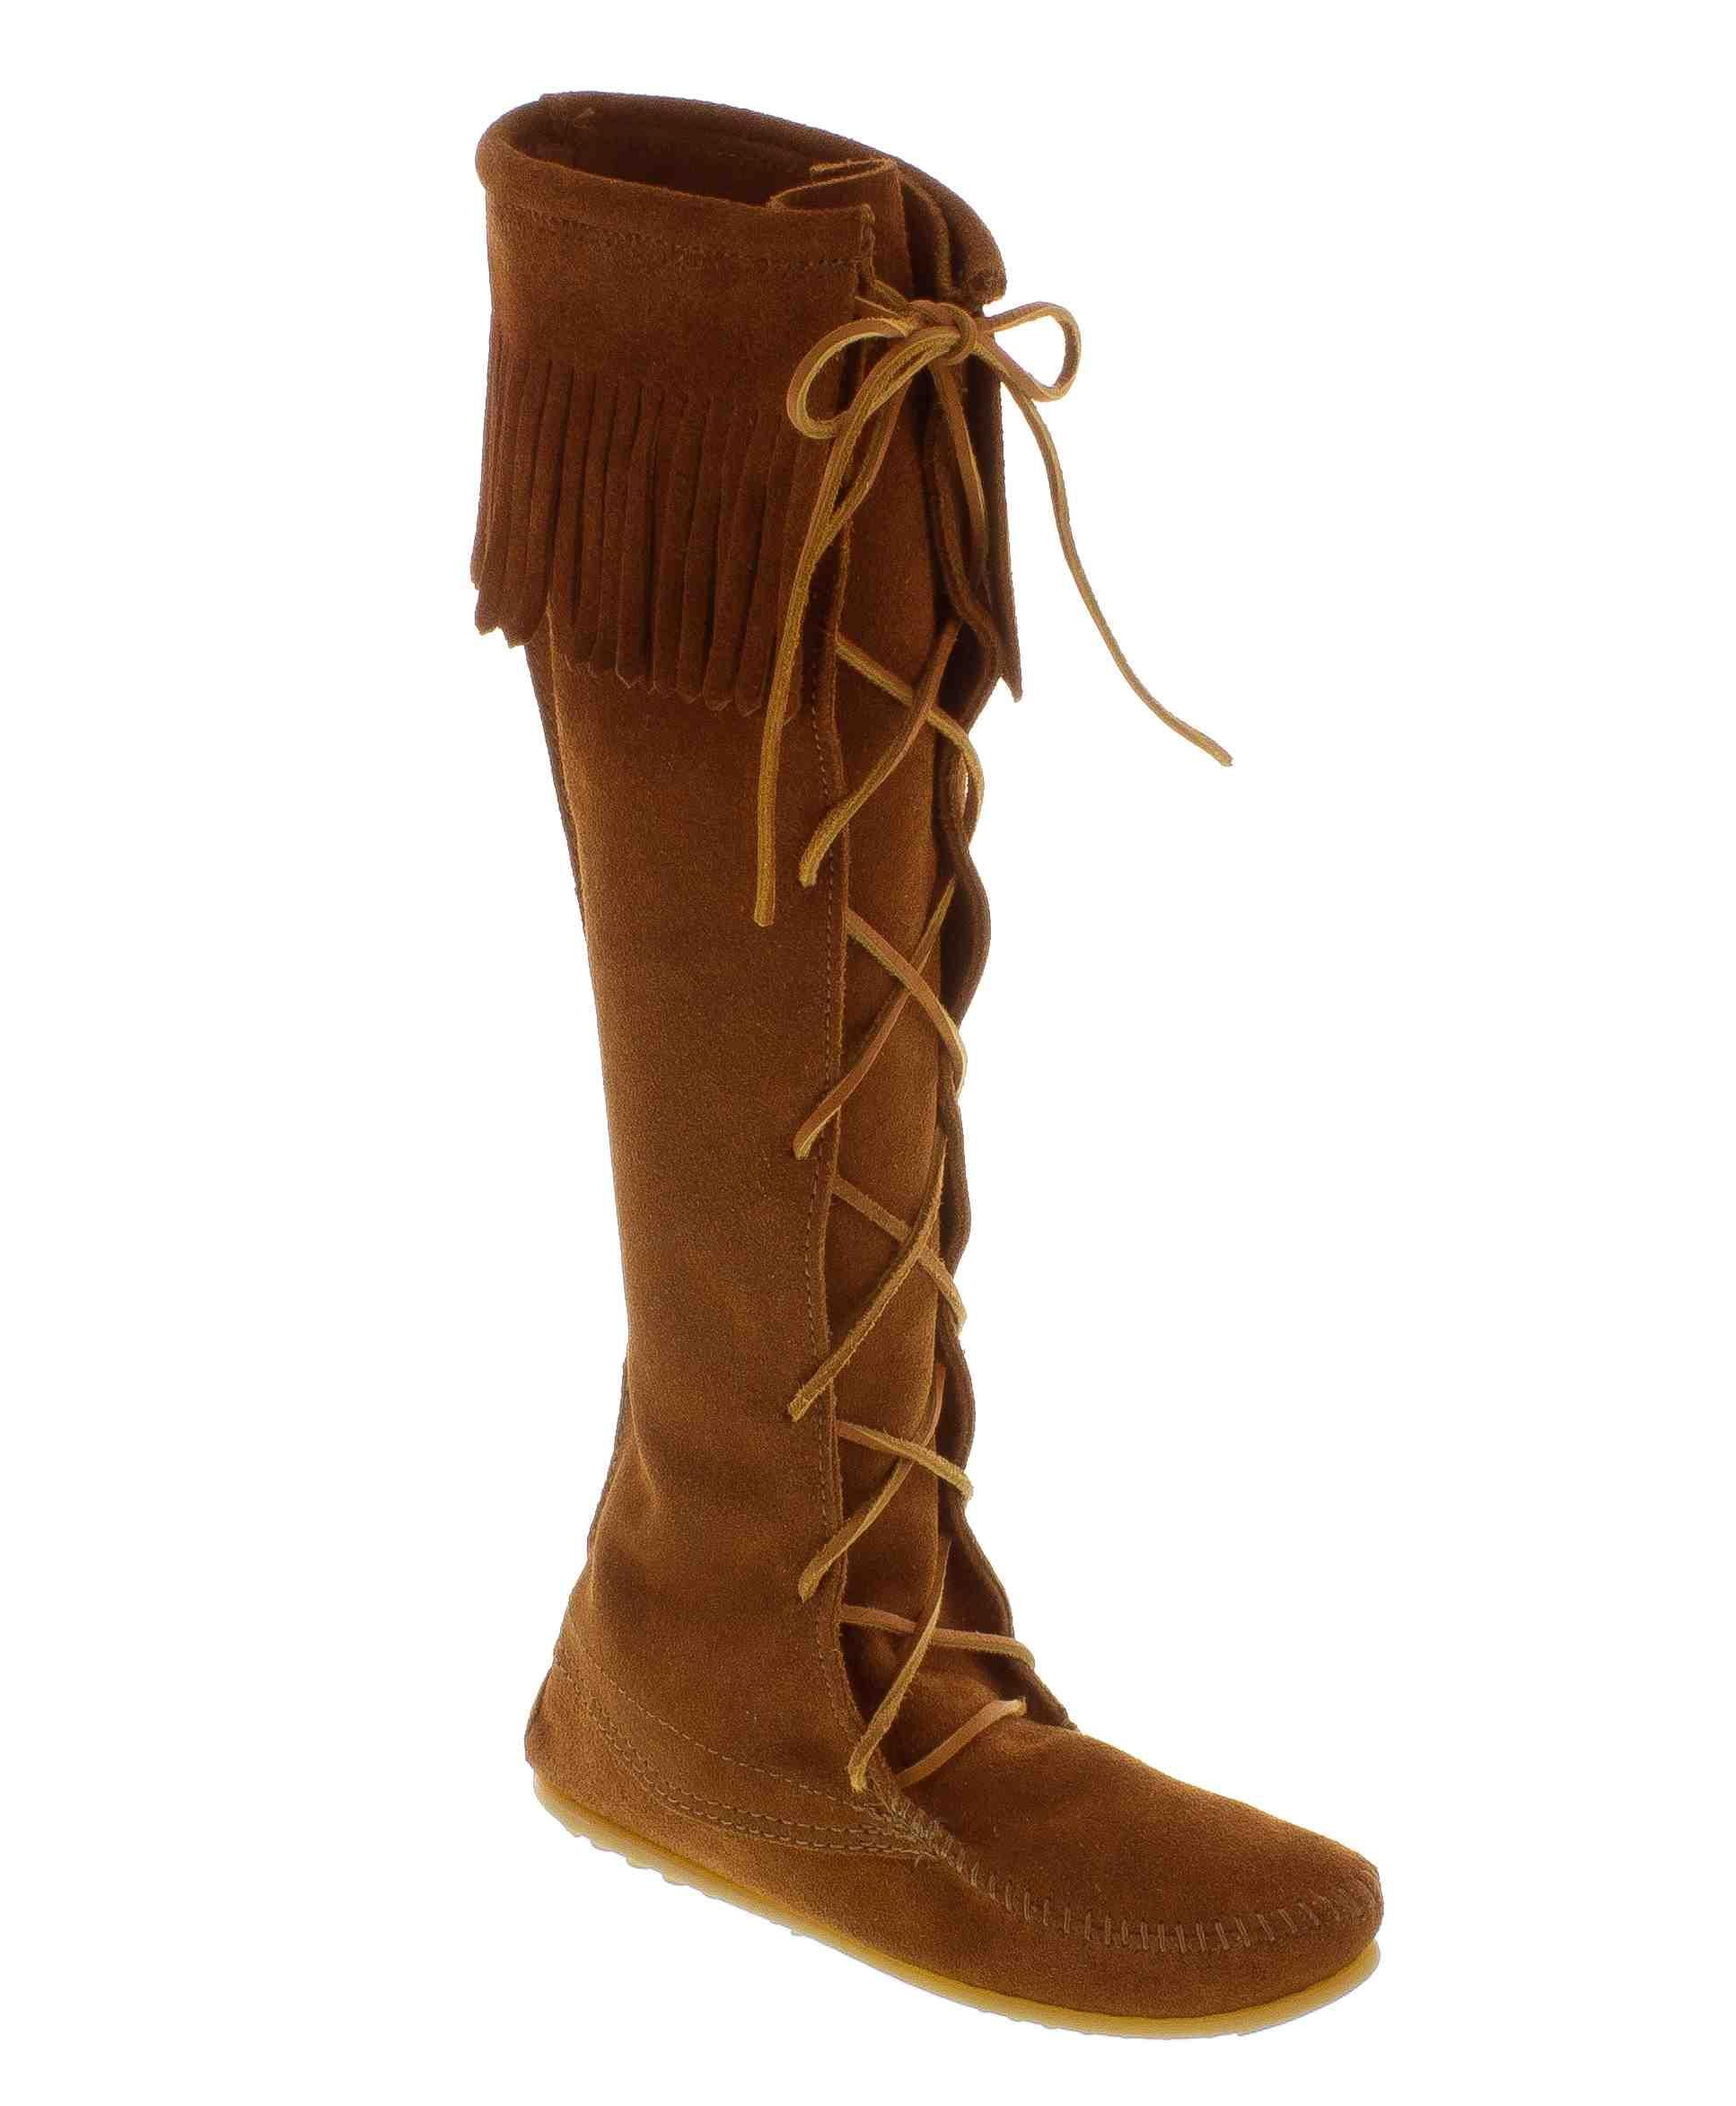 Minnetonka suede leather knee high tall lace up moccasin fringe boots - The Classic Fringe Boot Love Minnetonka Front Lace Hard Sole Knee Hi Boot